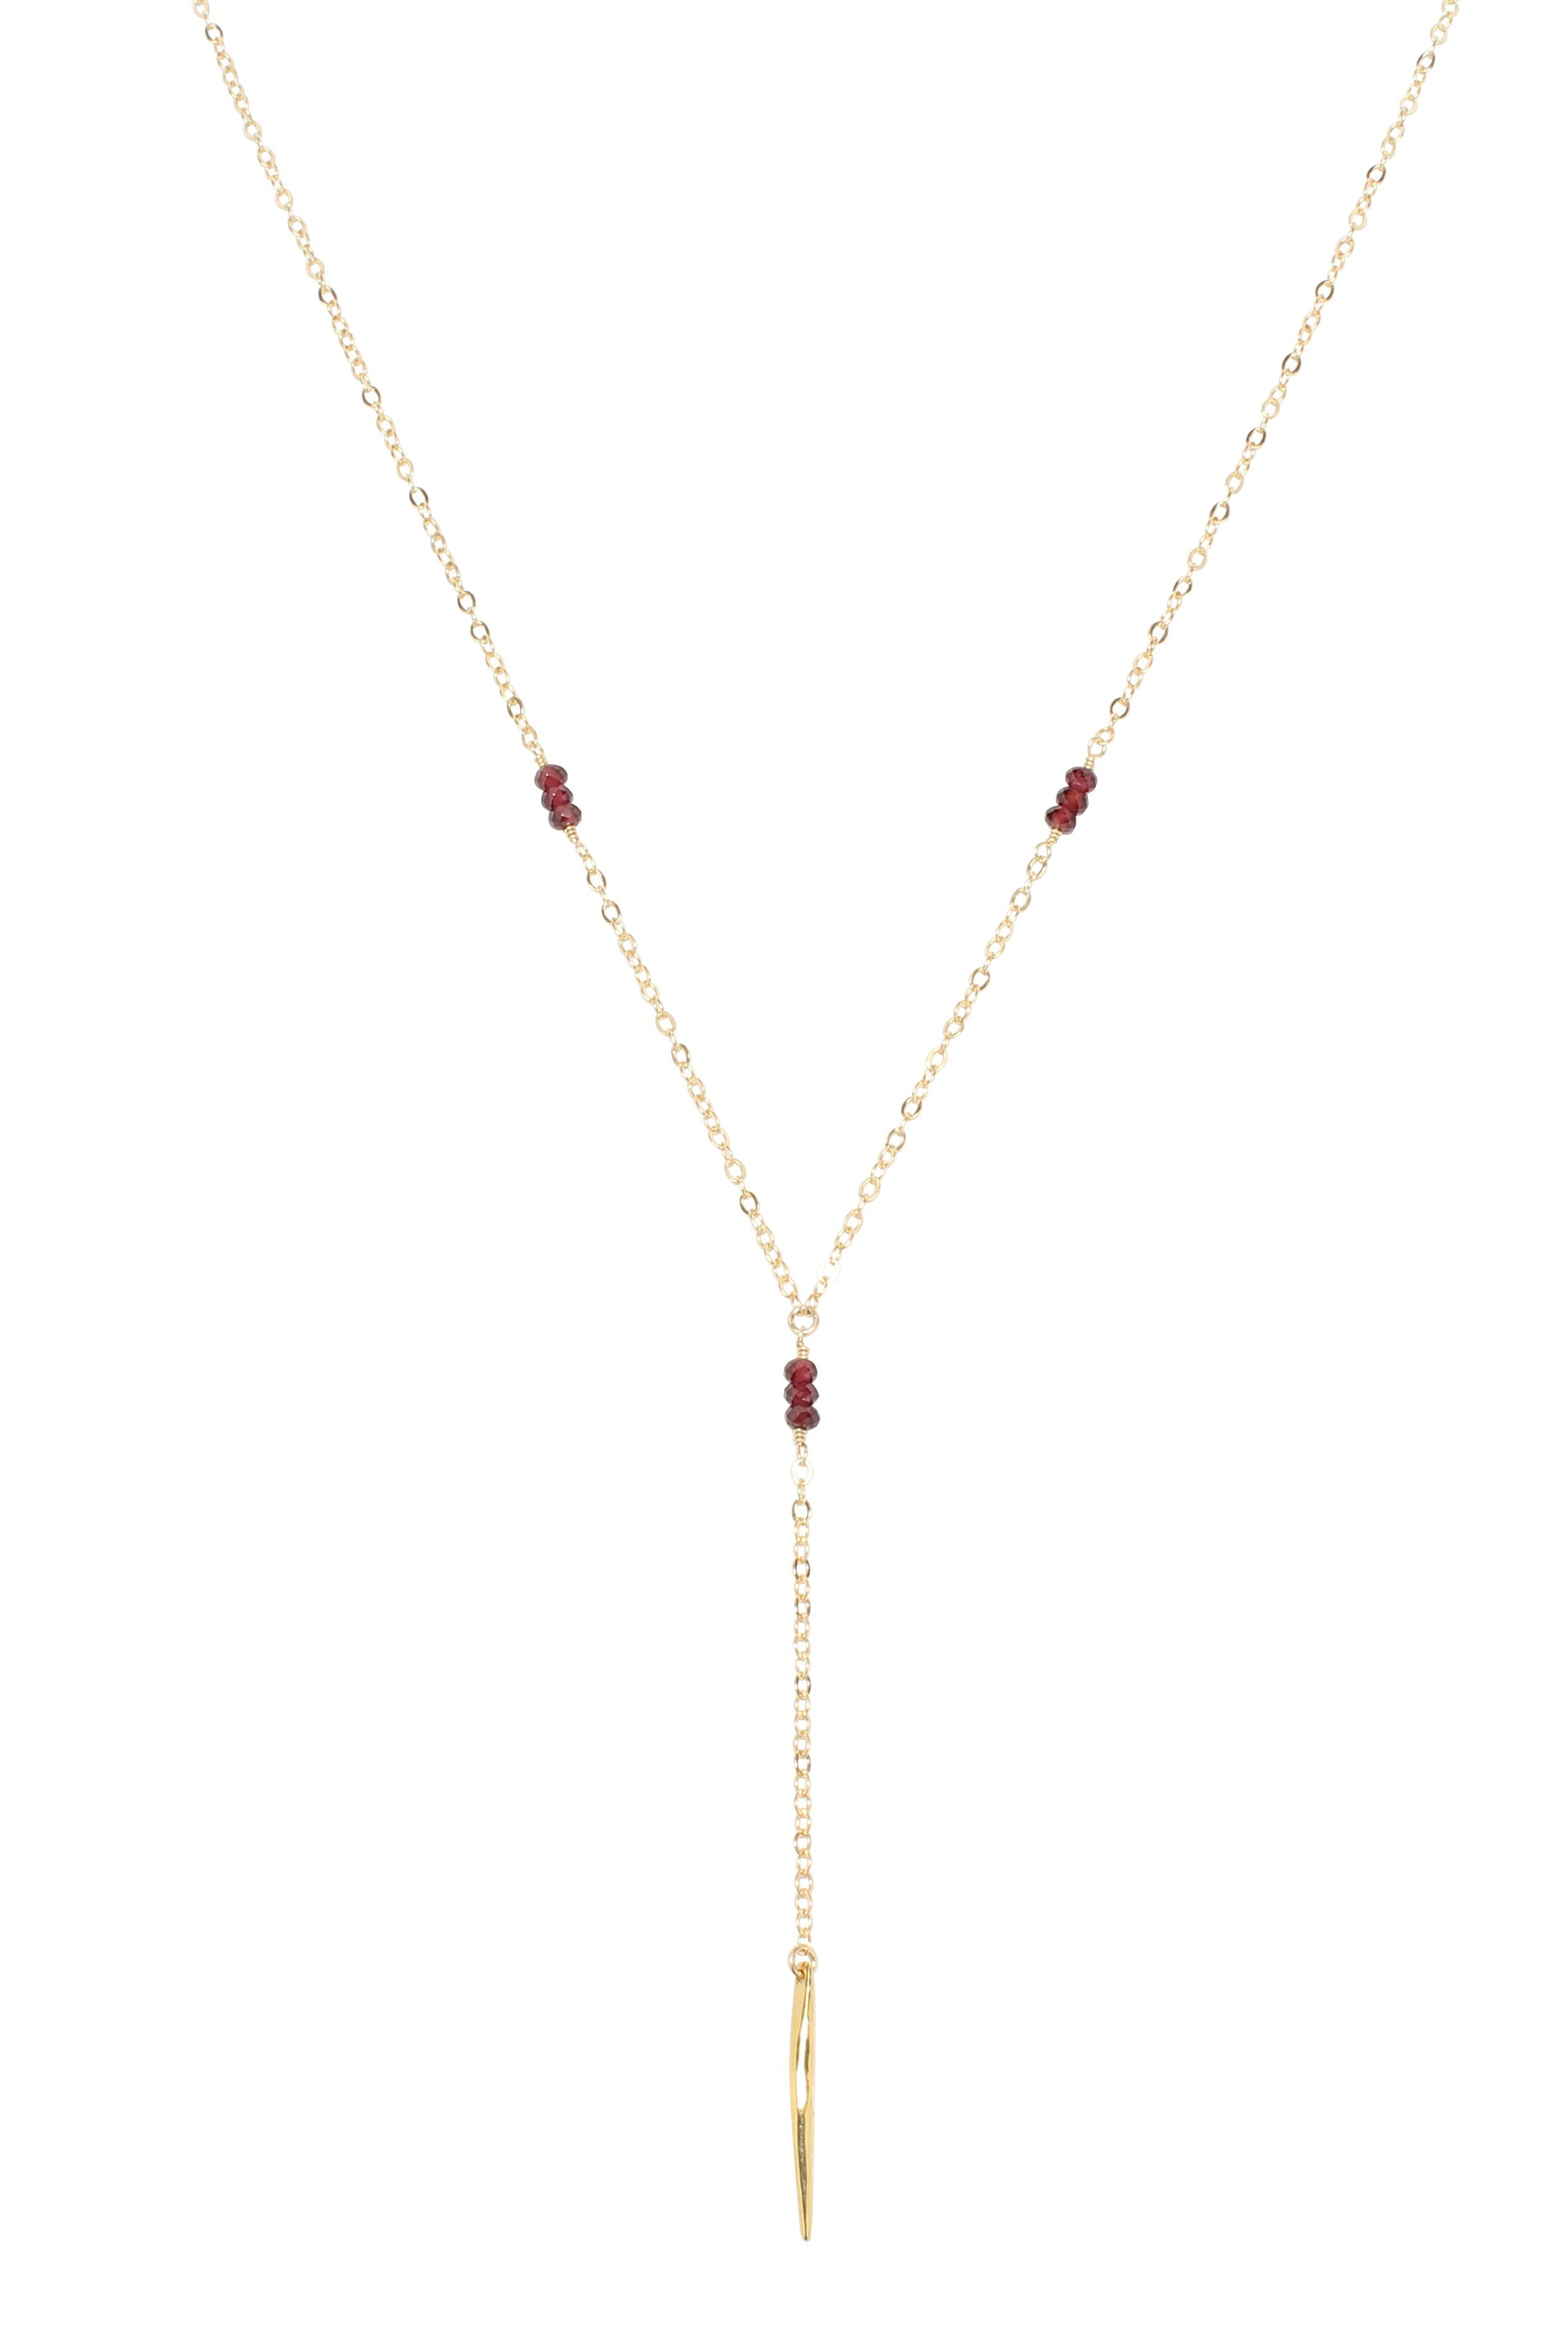 Melody Lariat Necklace Garnet Gold Brooke Landon Jewelry